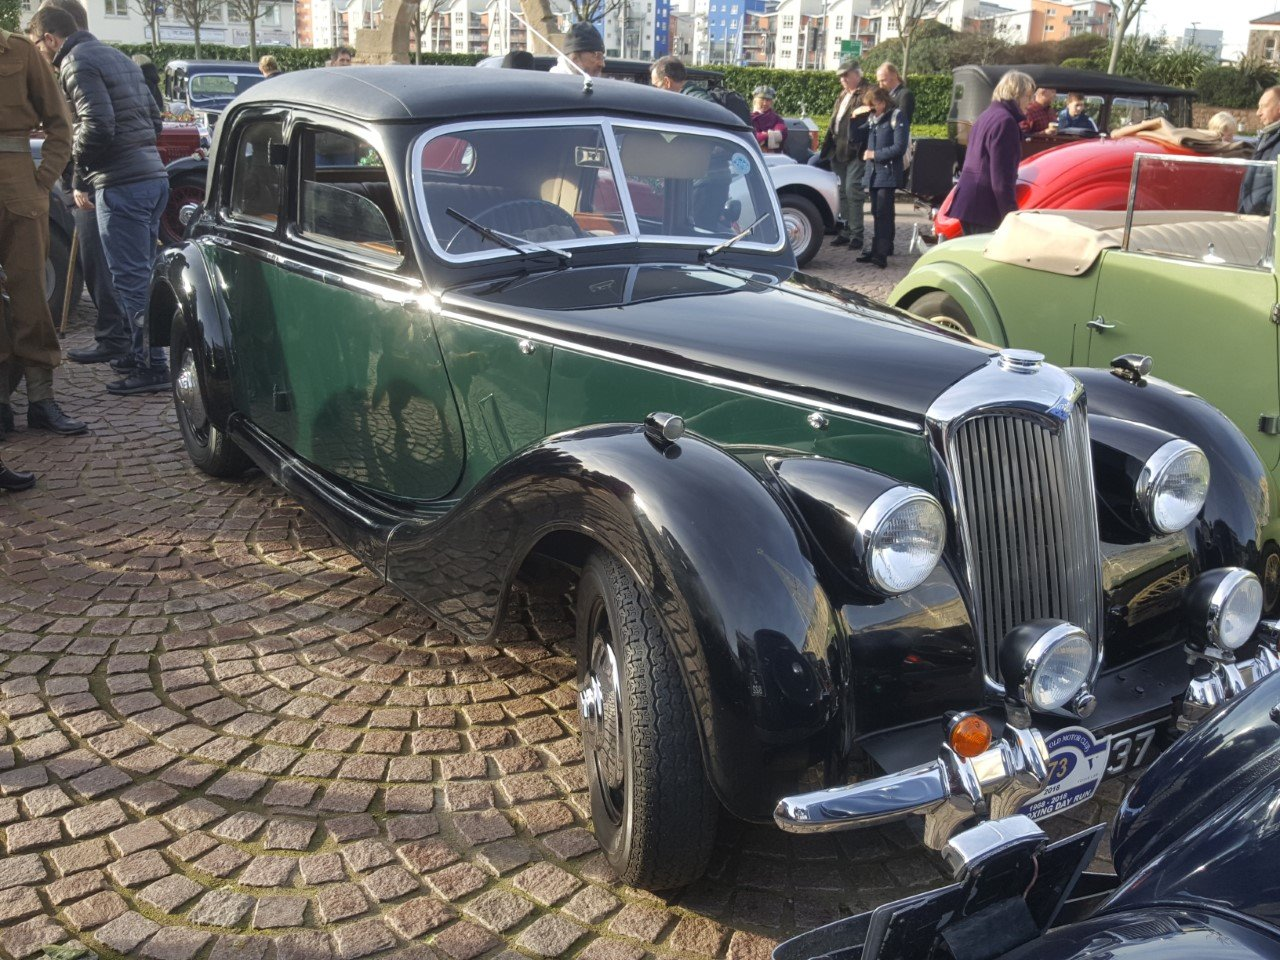 1948 RILEY RMB 2.5CC EX GENUINE POLICE CAR & ex GOODWOOD POLICE For Sale (picture 6 of 12)